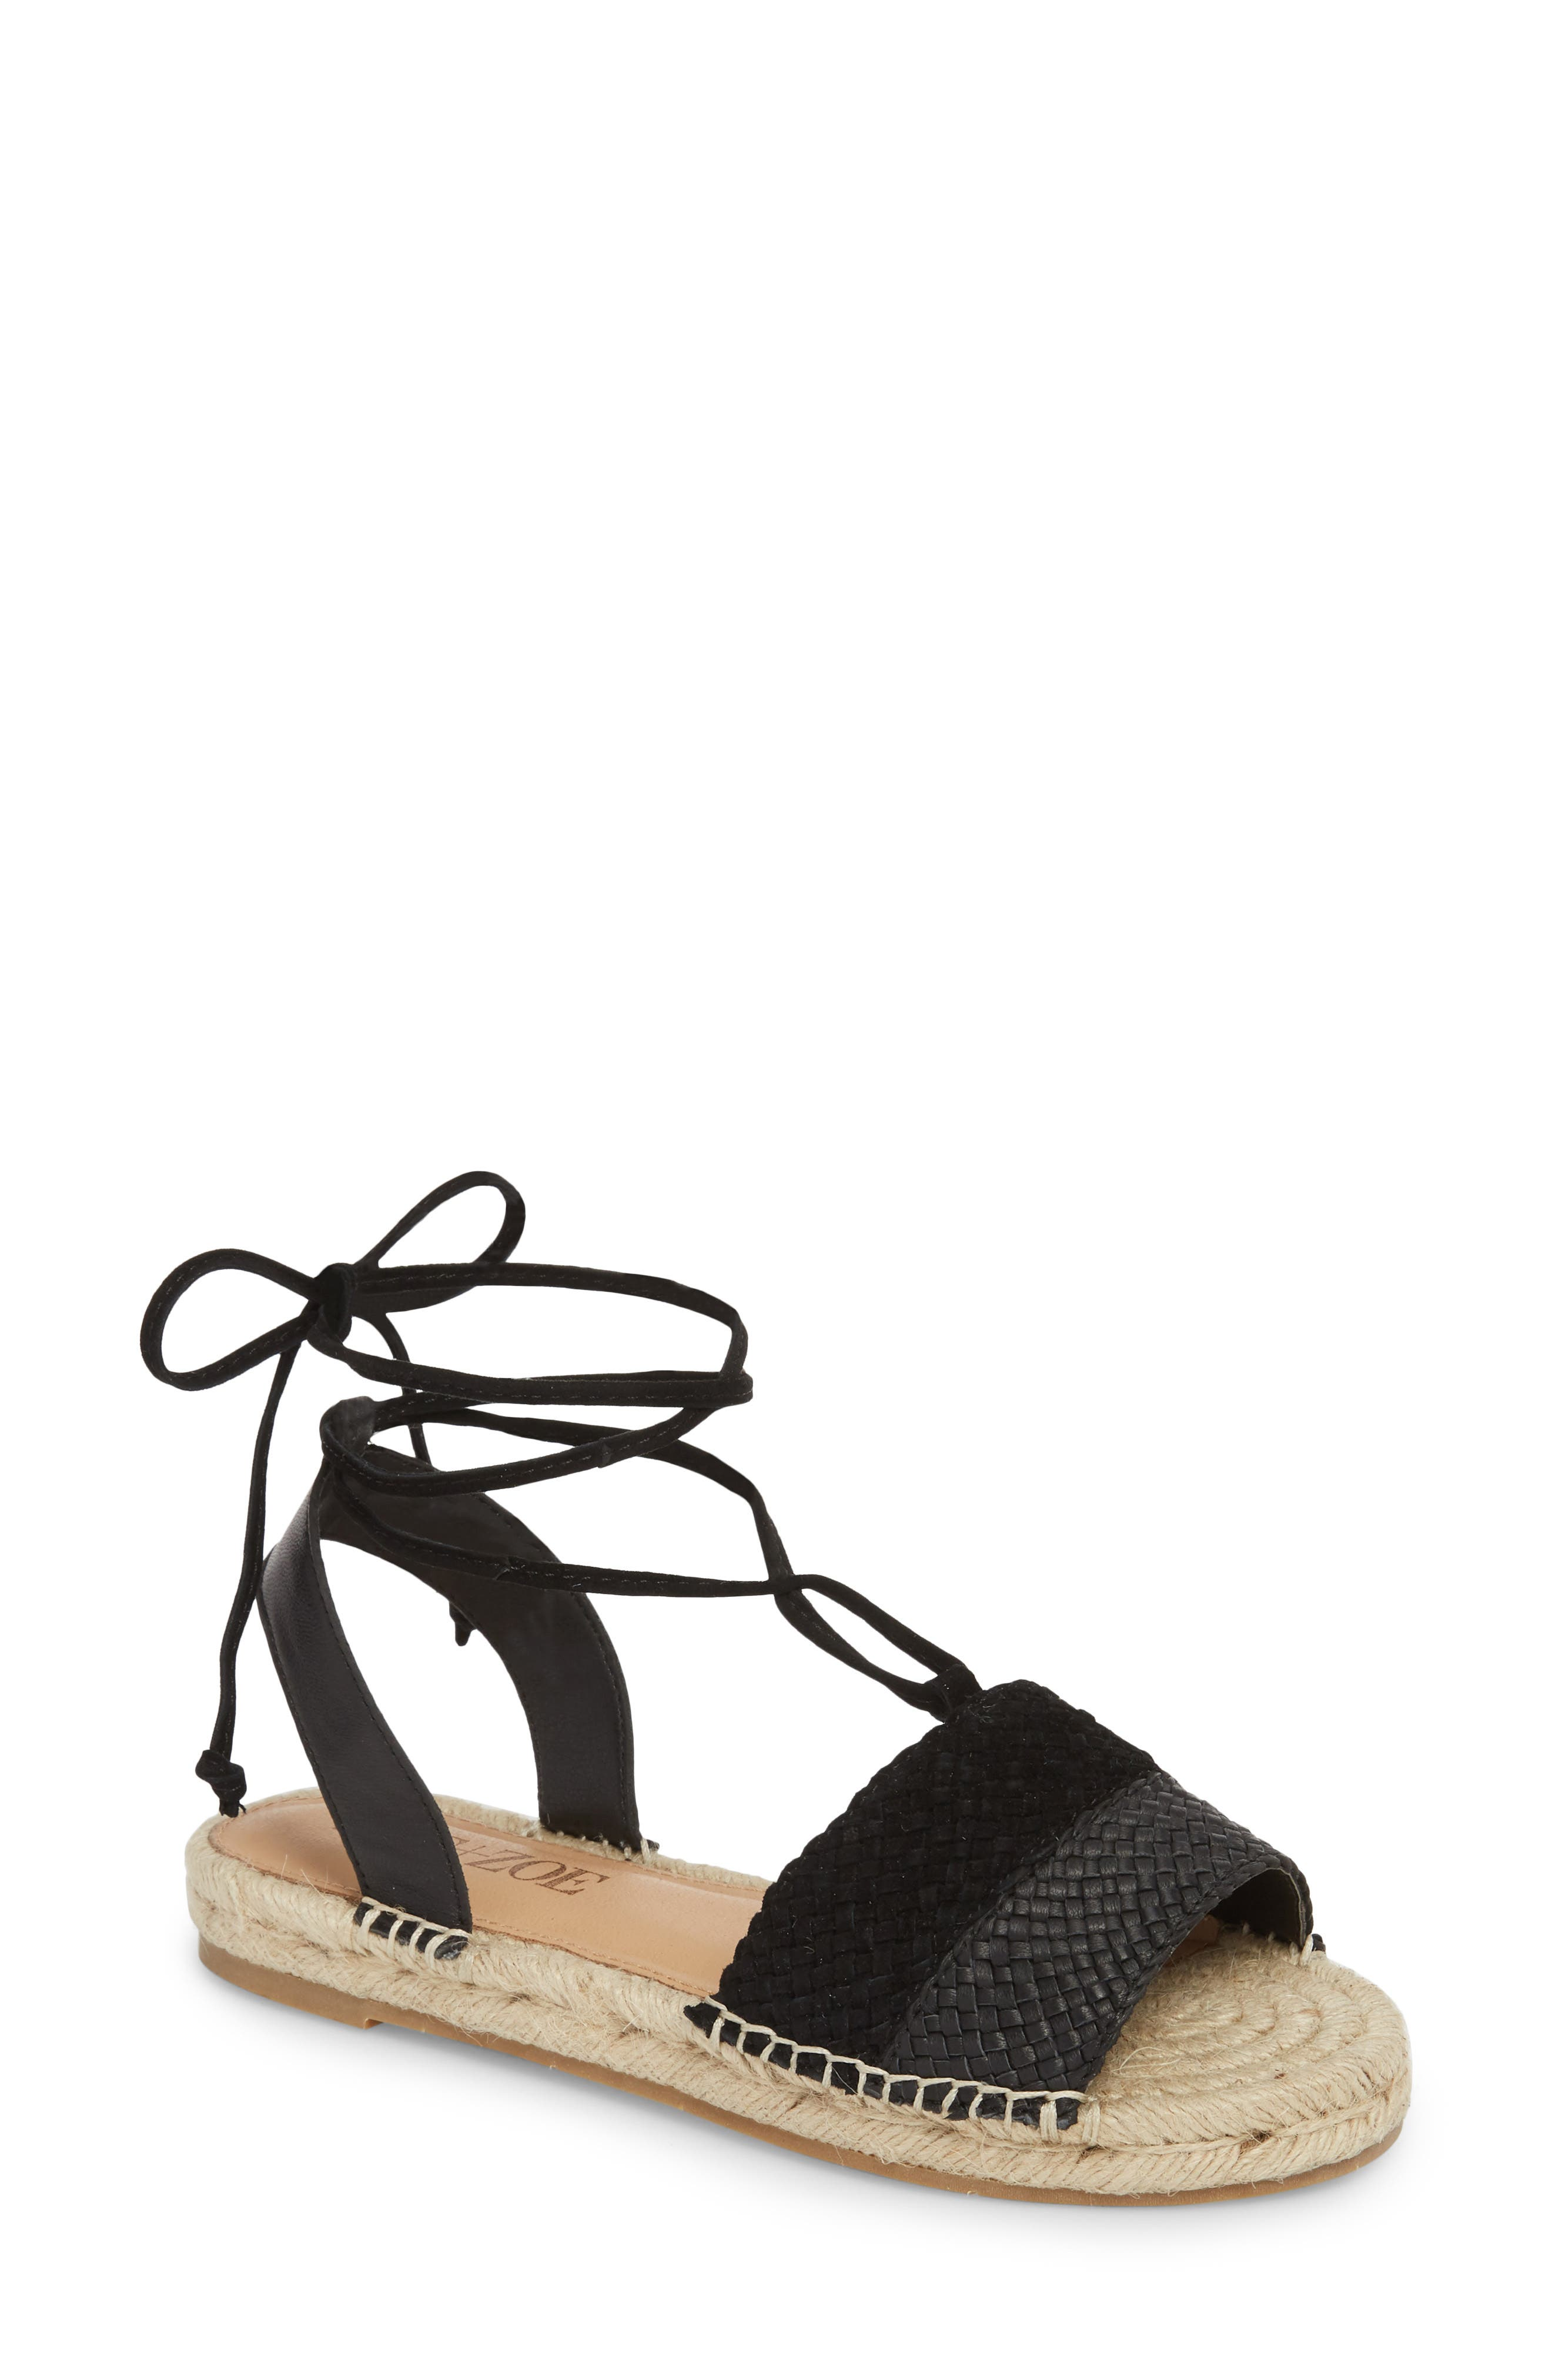 NIC+ZOE, Eliza Ankle Wrap Espadrille Sandal, Main thumbnail 1, color, BLACK FABRIC